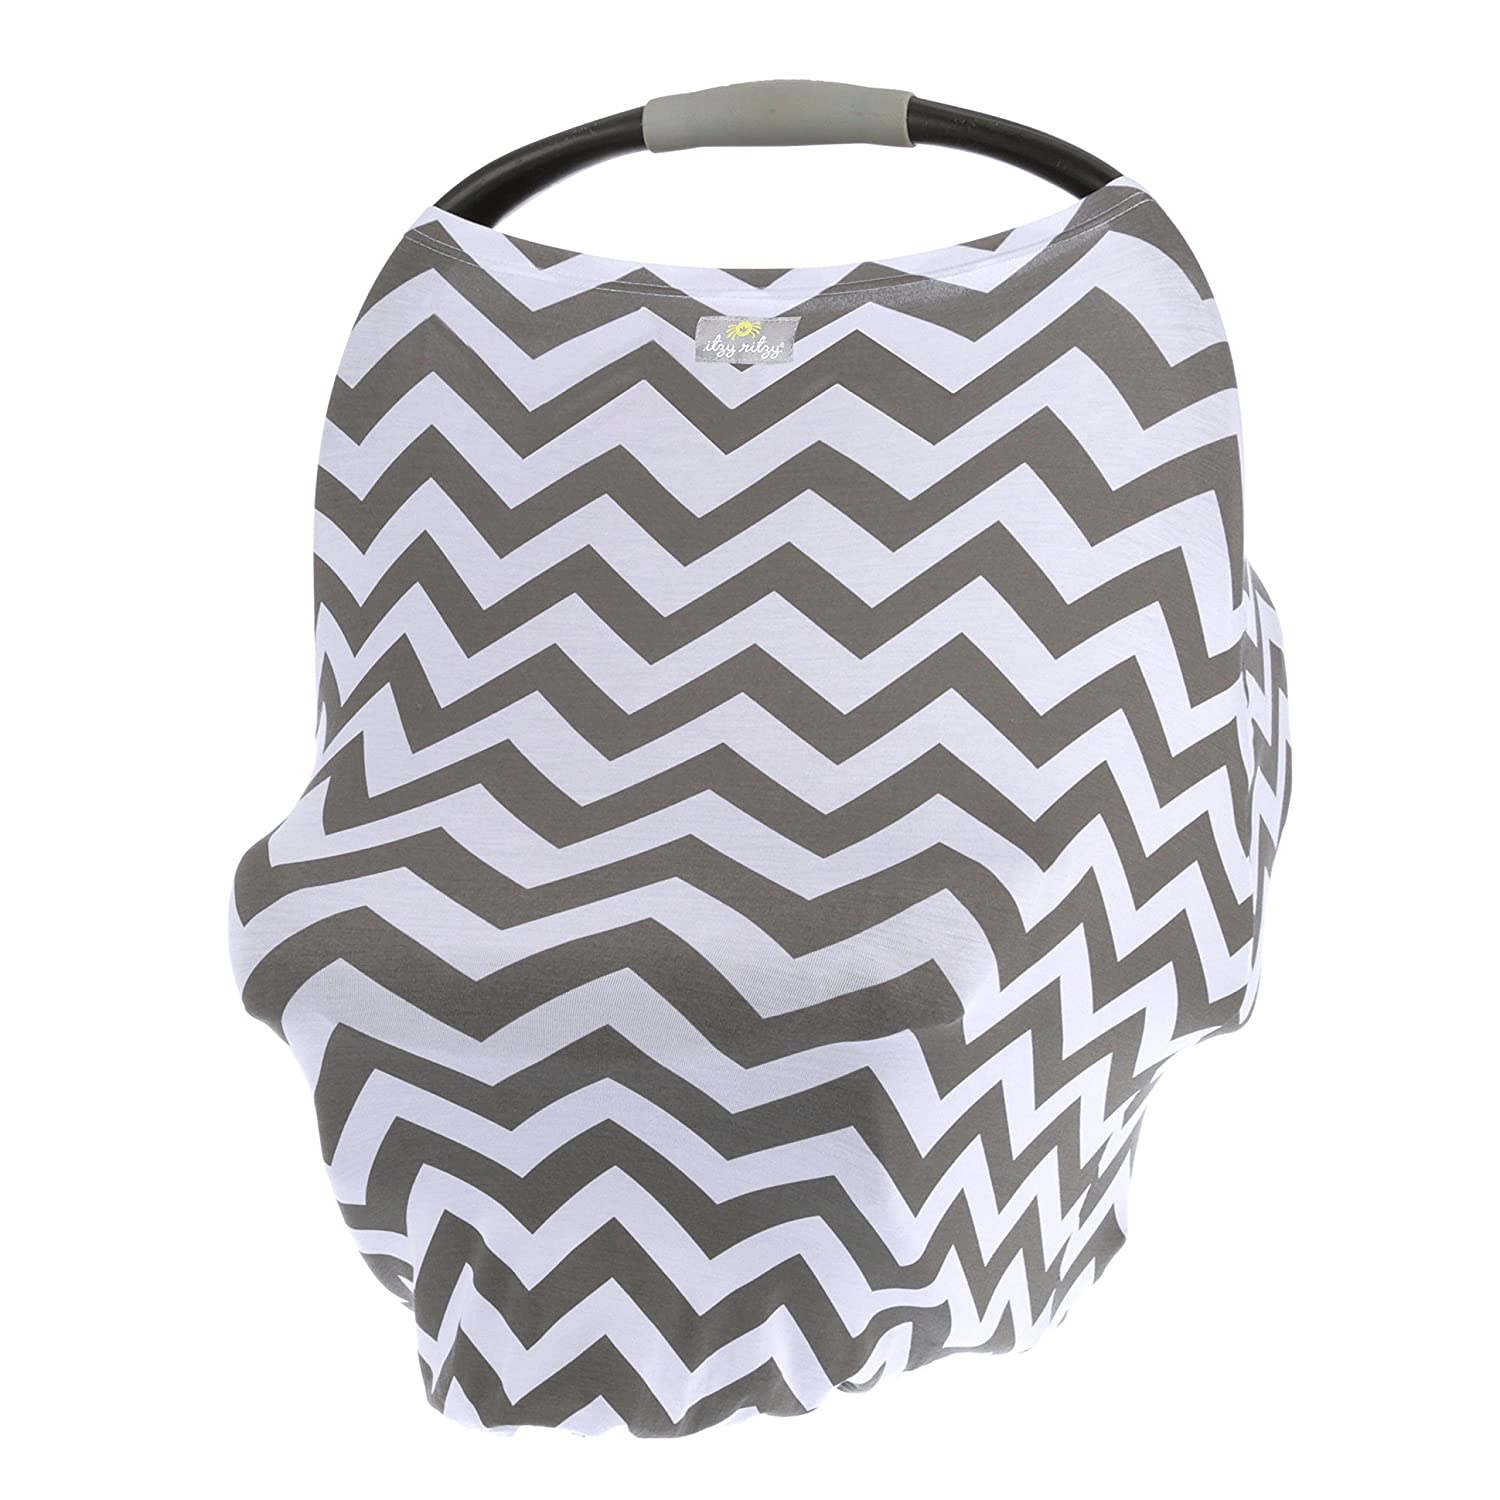 Car Seat Canopy Multi-Use Mom Boss Breastfeeding Cover Cart Cover /& Scarf Black /& White Stripe Shopping Cart Cover and Infinity Scarf /& Breathable Itzy Ritzy 4-in-1 Nursing Cover Car Seat Cover